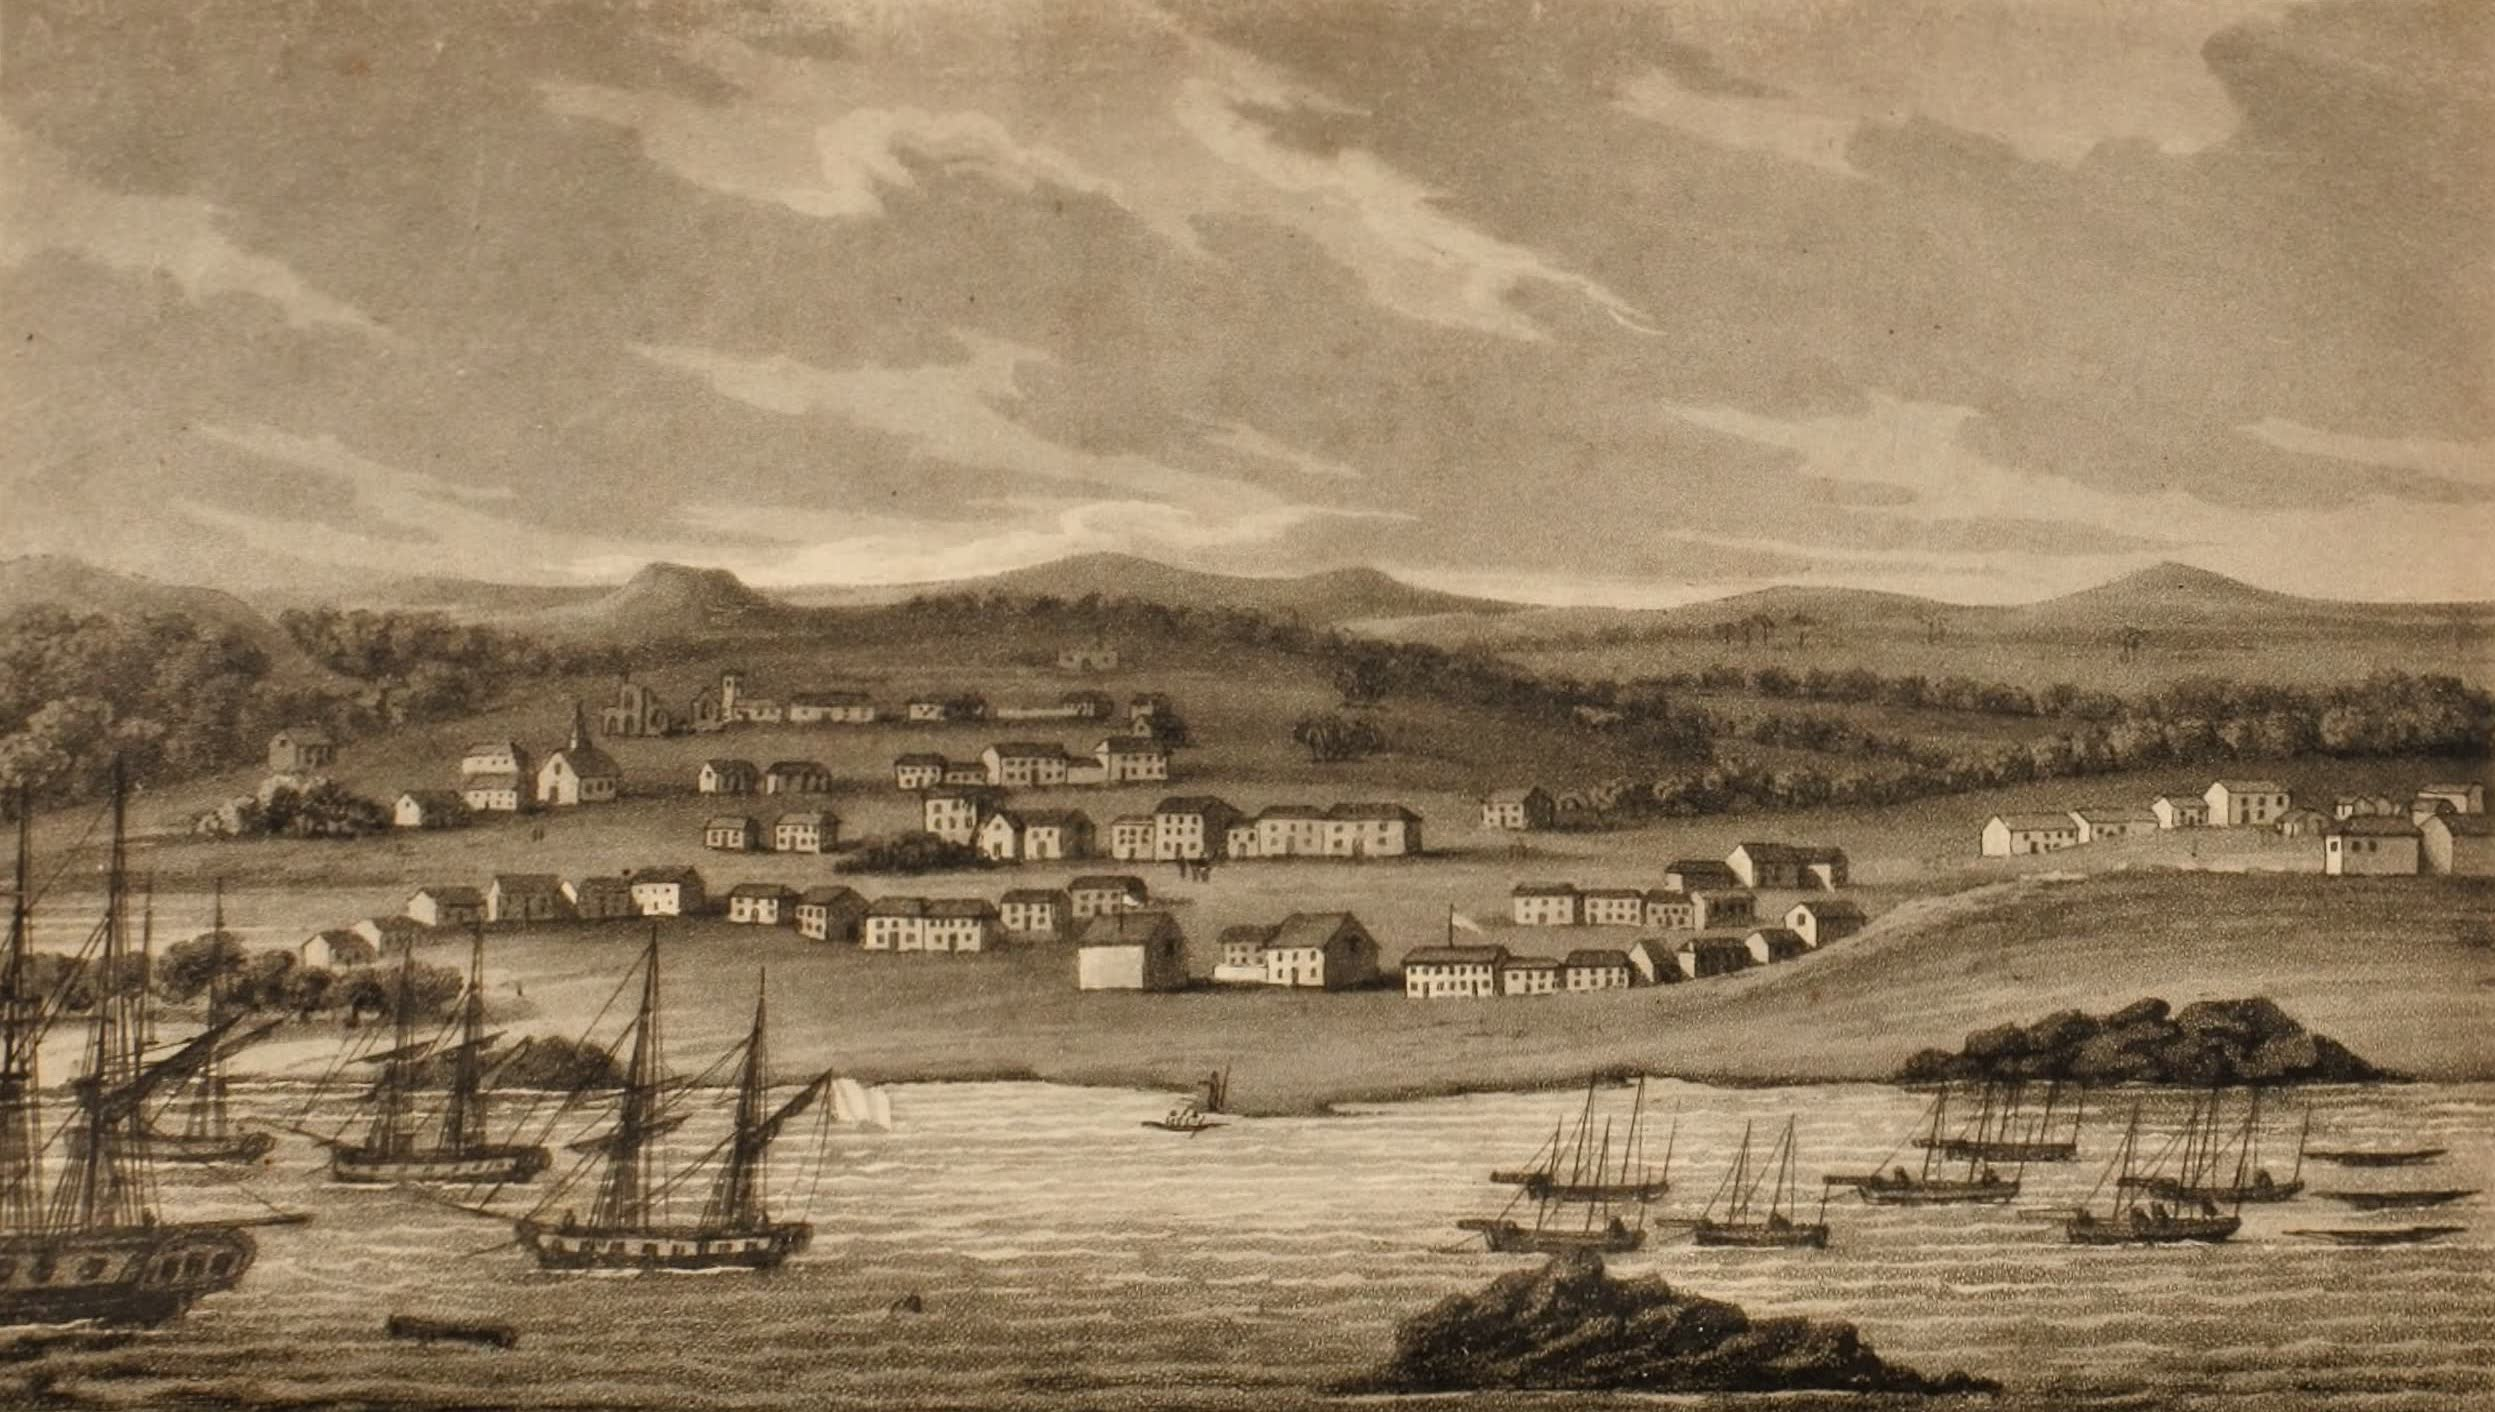 Journal of an Expedition 1400 miles up the Orinoco - Angostura (1822)